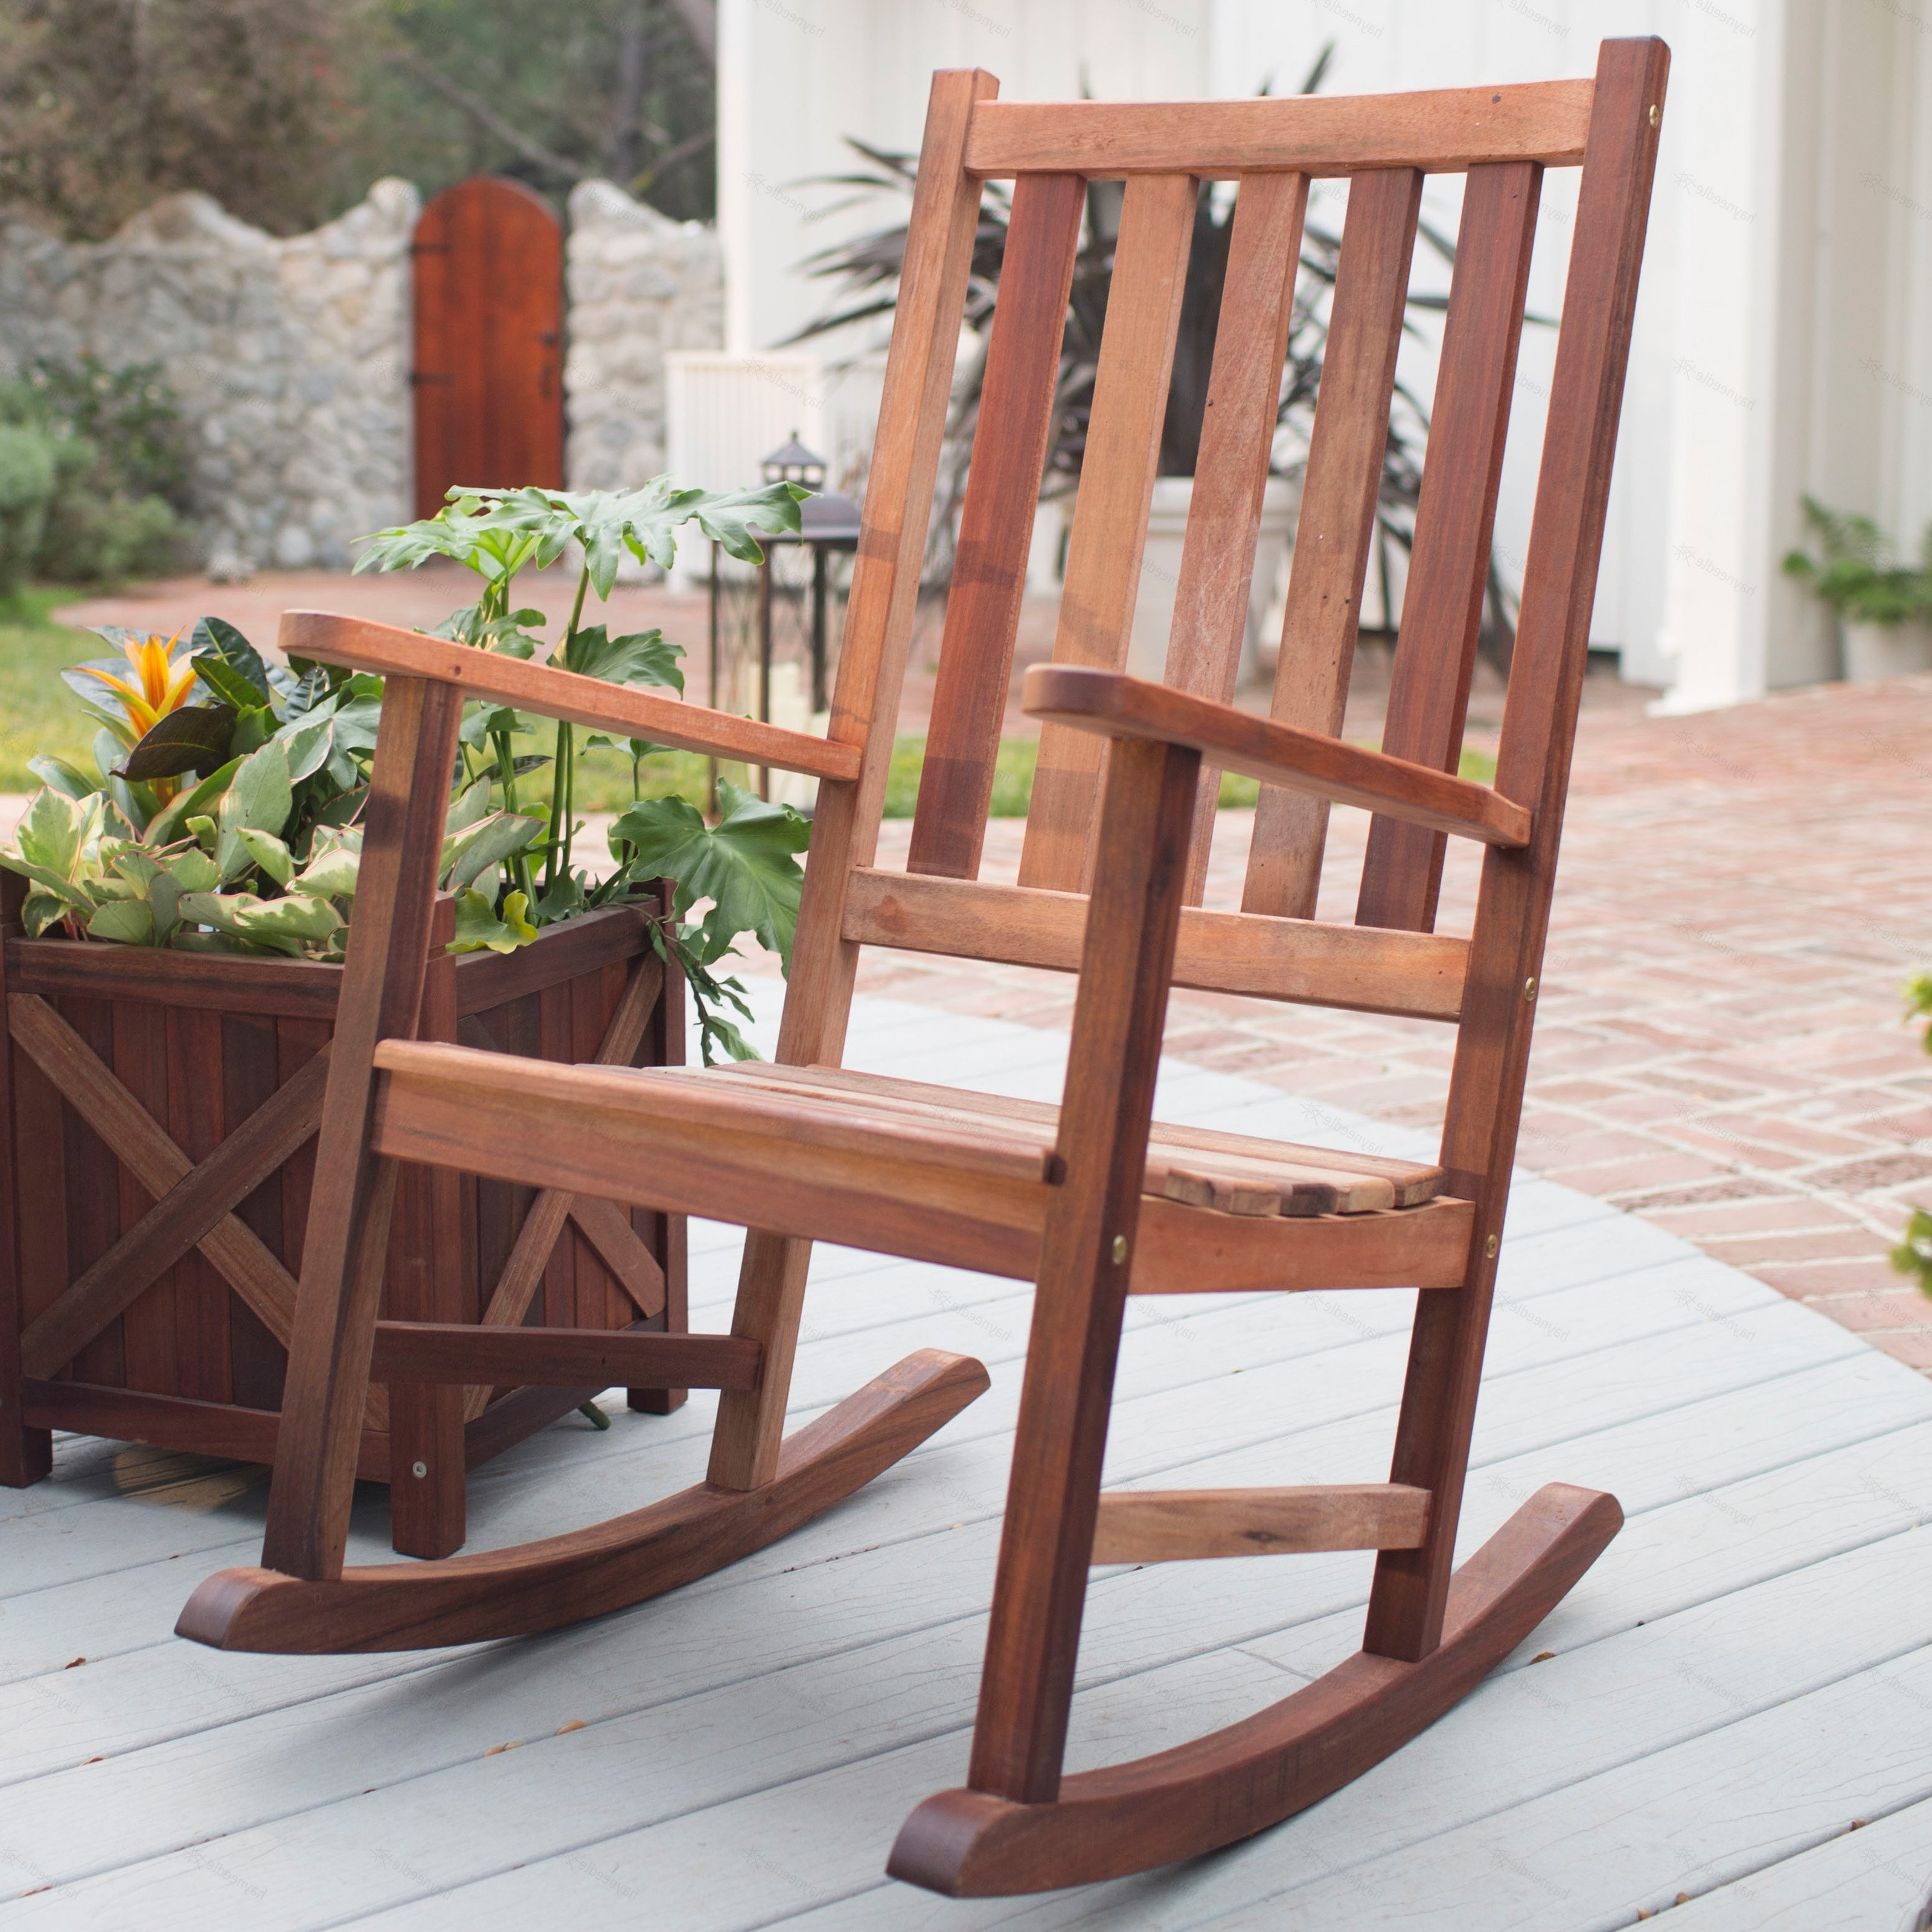 Fashionable Unique Outdoor Rocking Chairs Intended For Enjoy A Comfortable Swing With Rocking Chair – Bellissimainteriors (View 8 of 15)